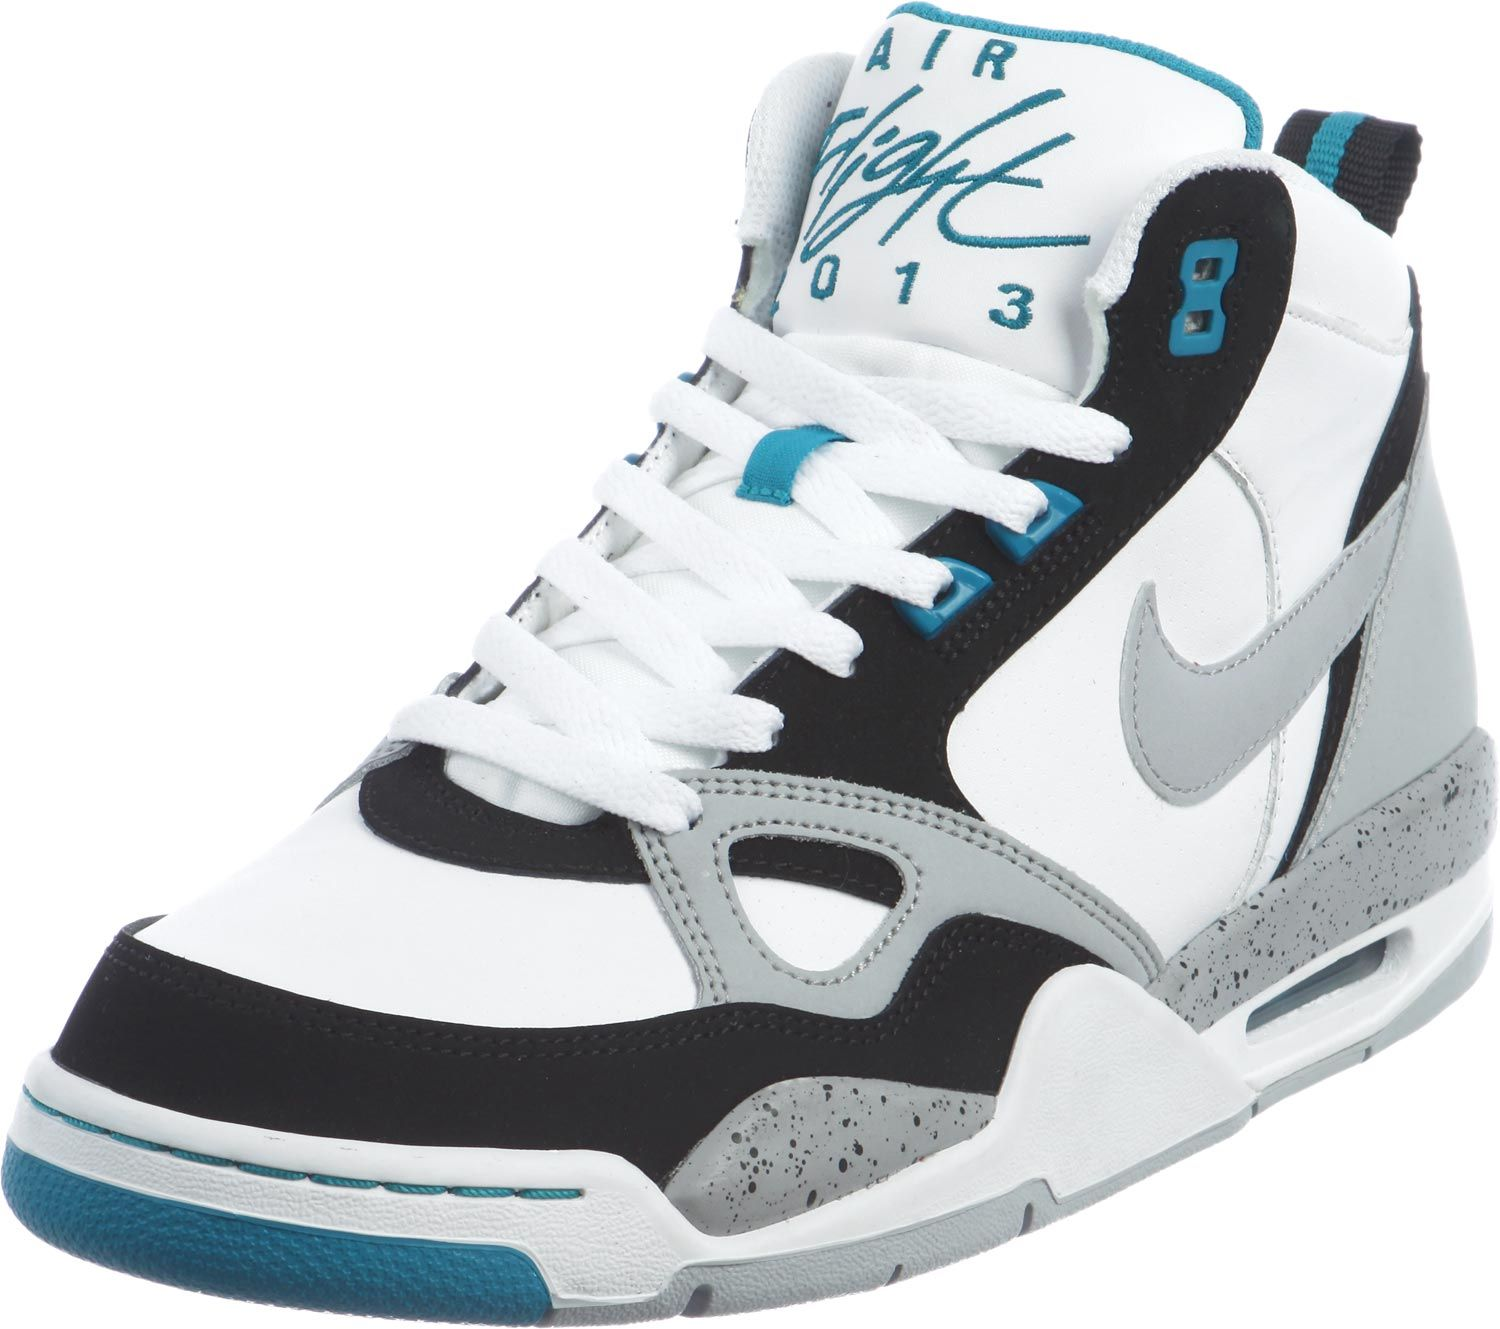 online store 3d2a9 6b4b7 Nike flights   Nike Flight  13 shoes white grey turquoise